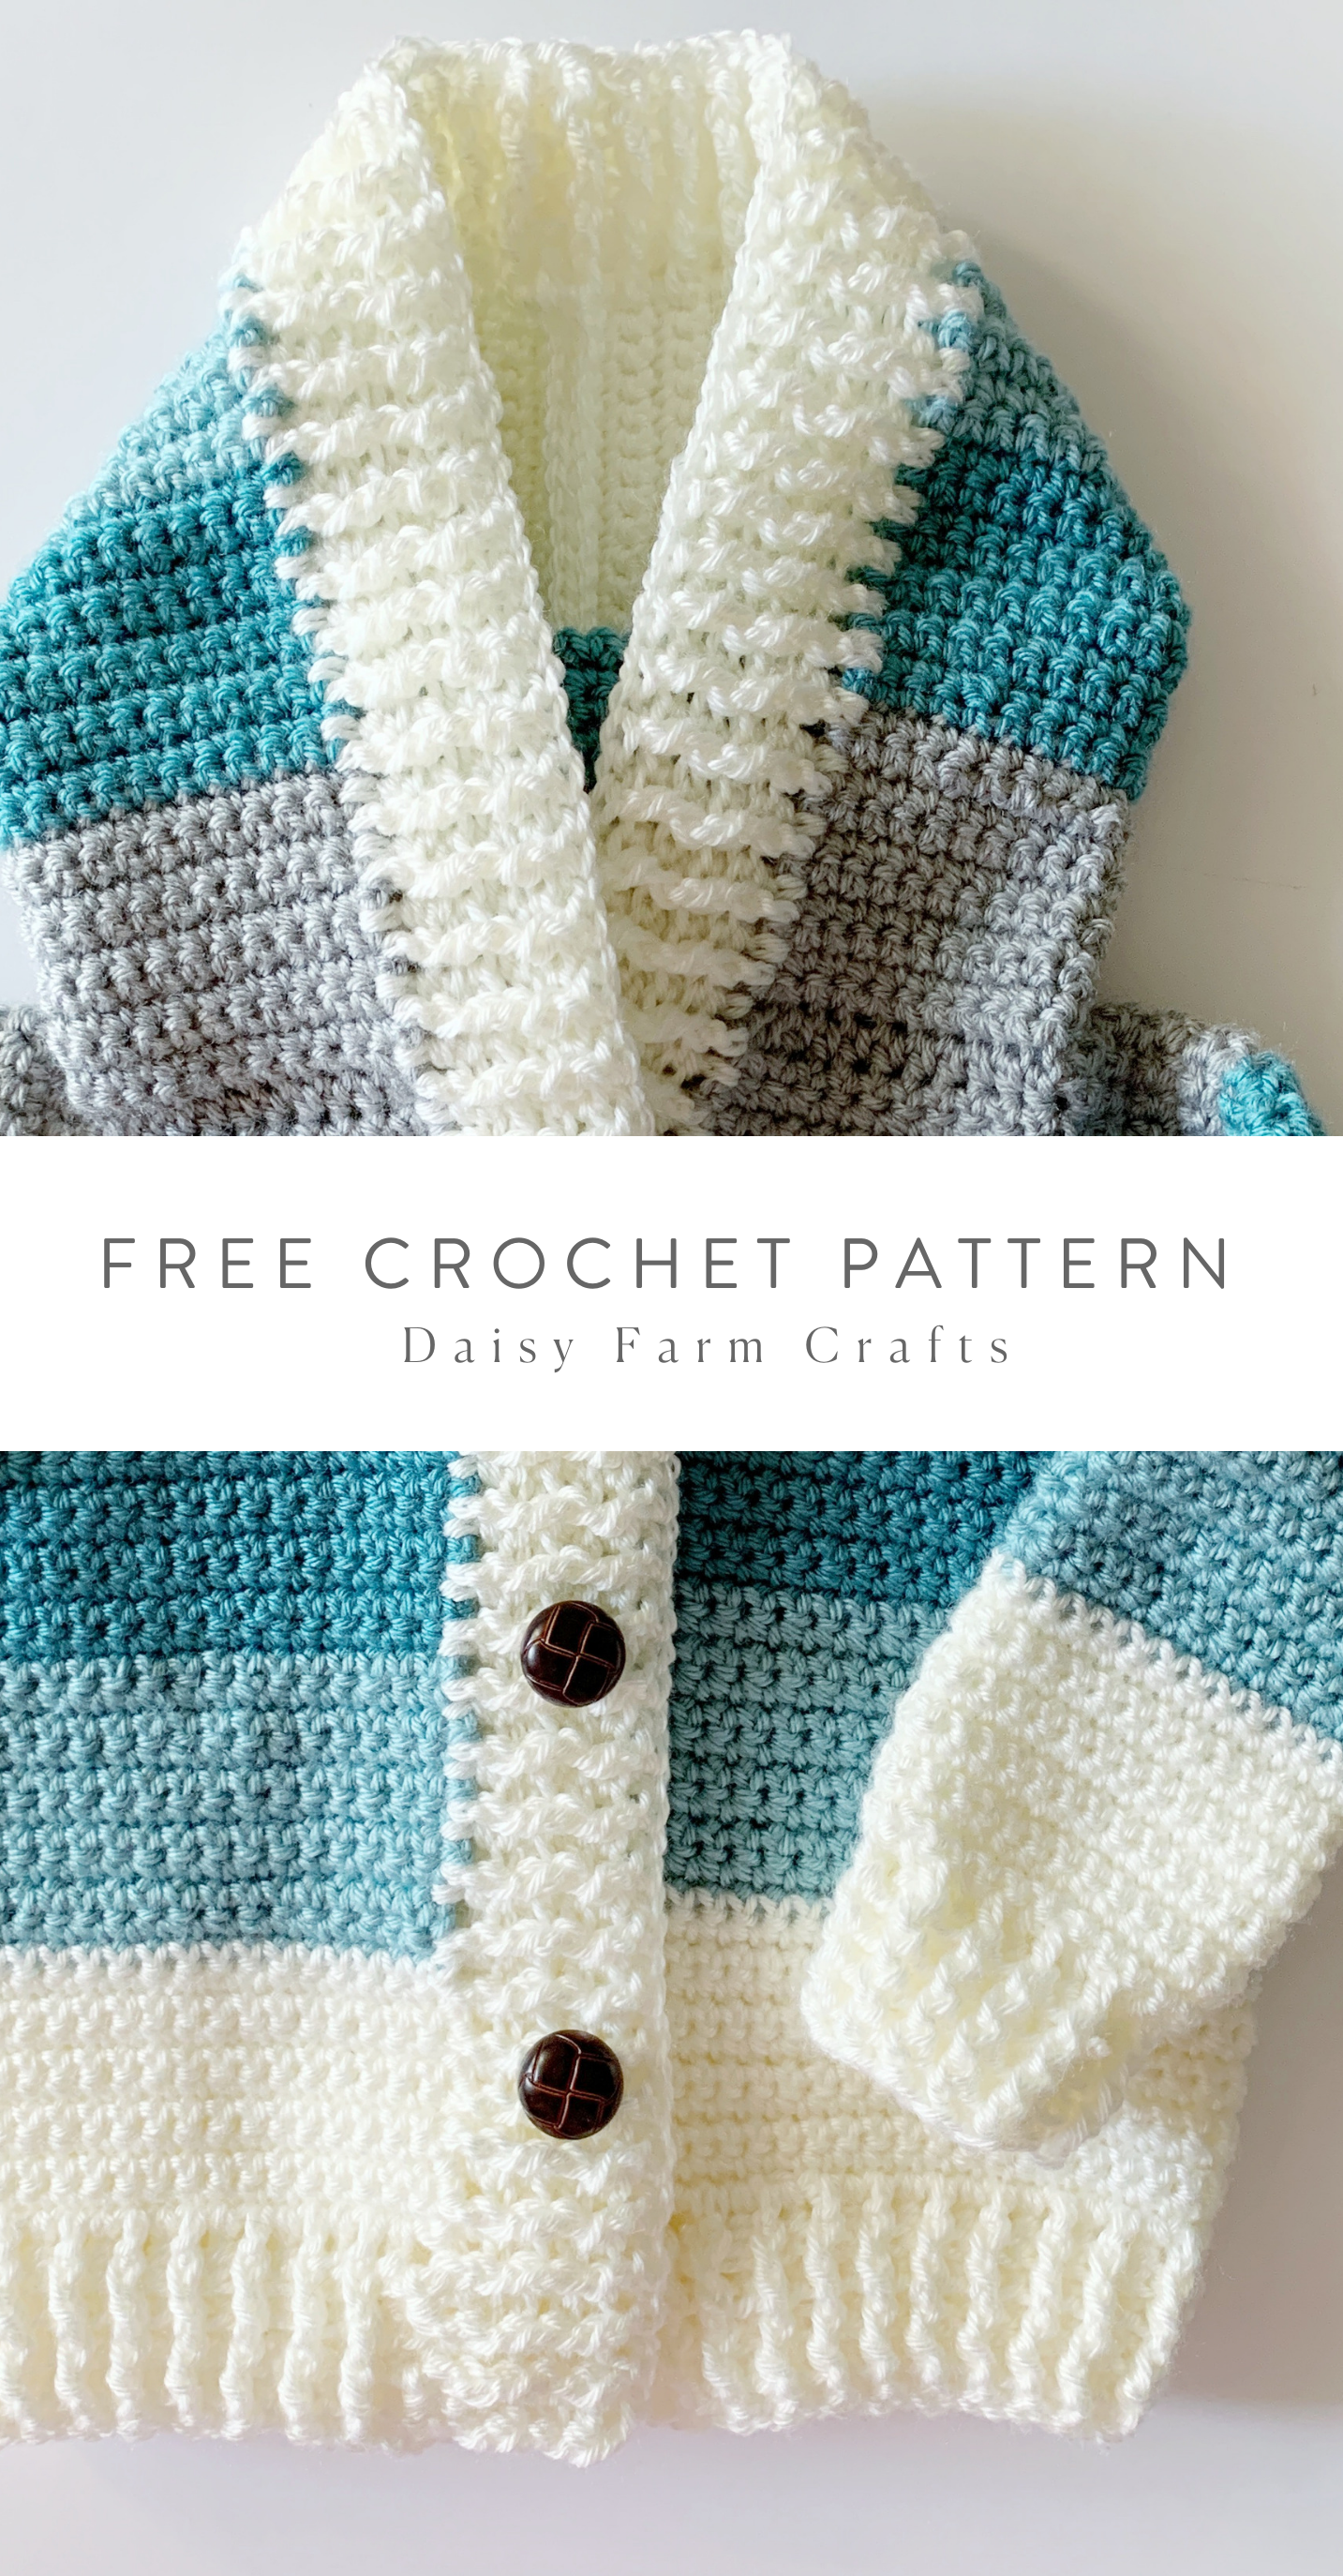 Free Crochet Pattern - Four Color Baby Sweater